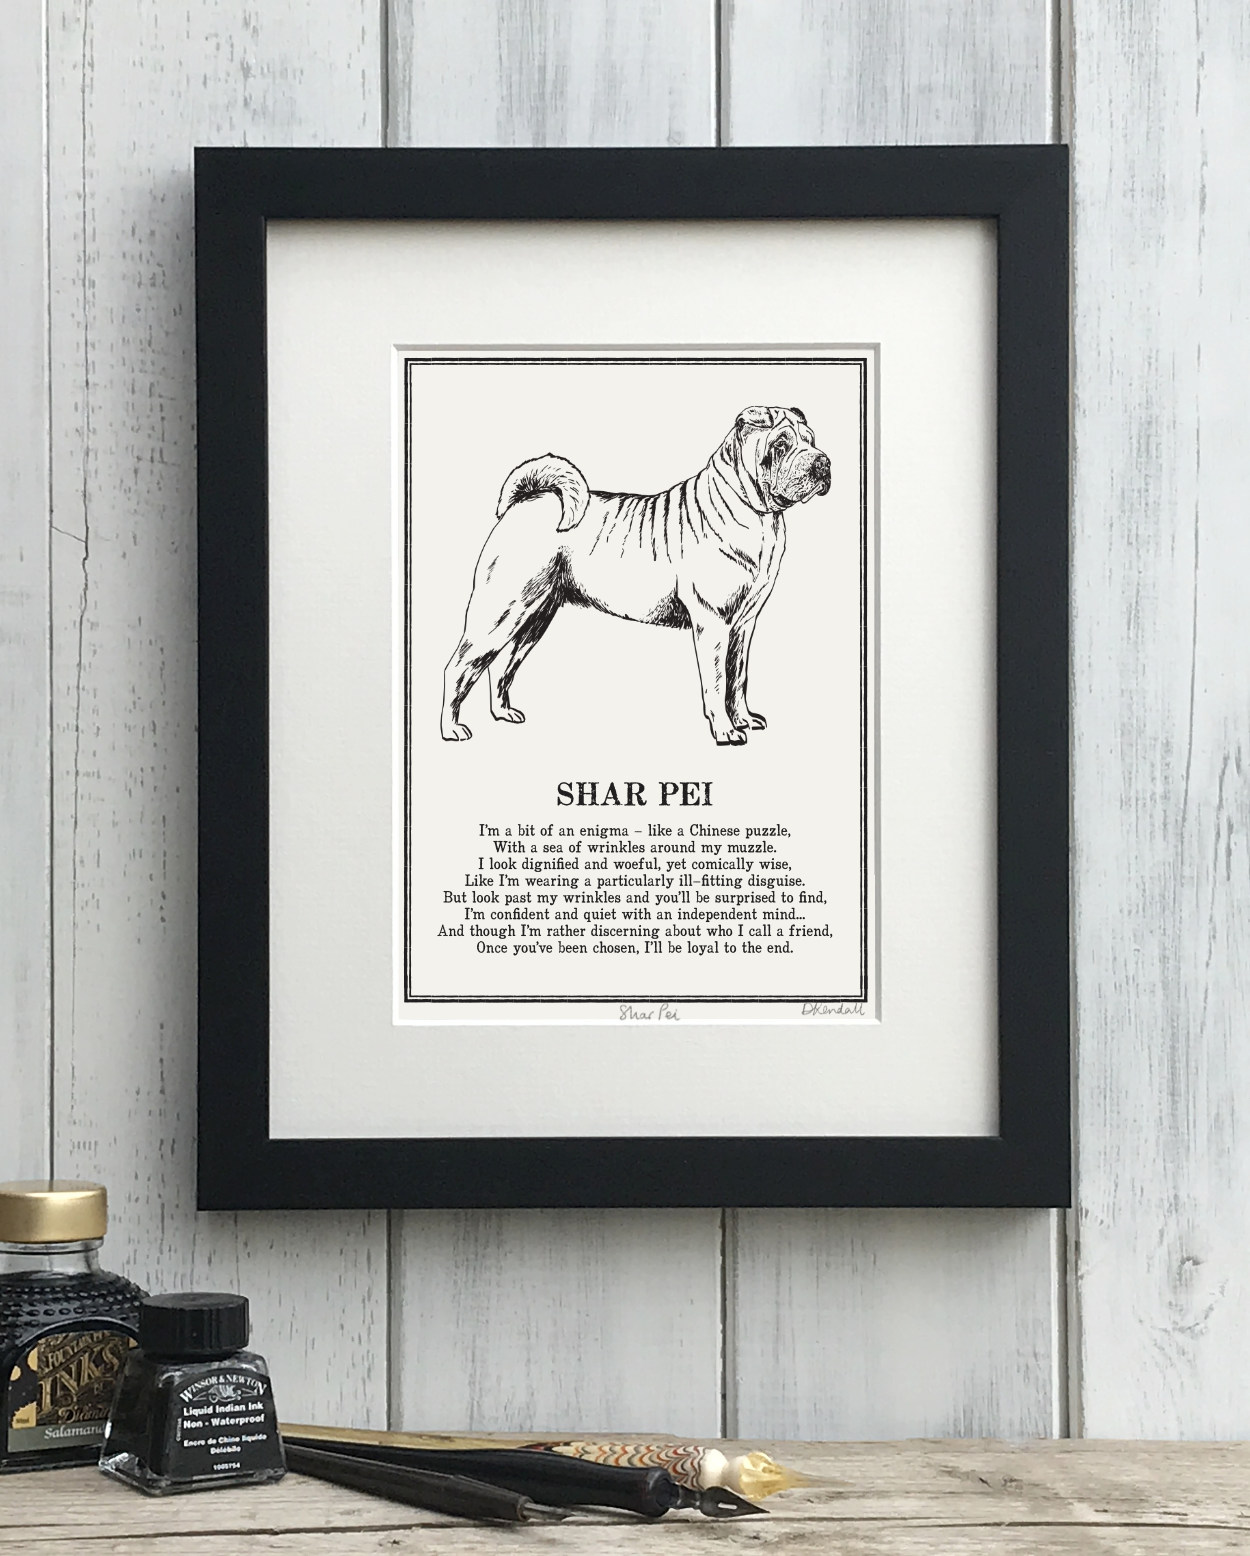 Shar Pei Doggerel Illustrated Poem Art Print | The Enlightened Hound